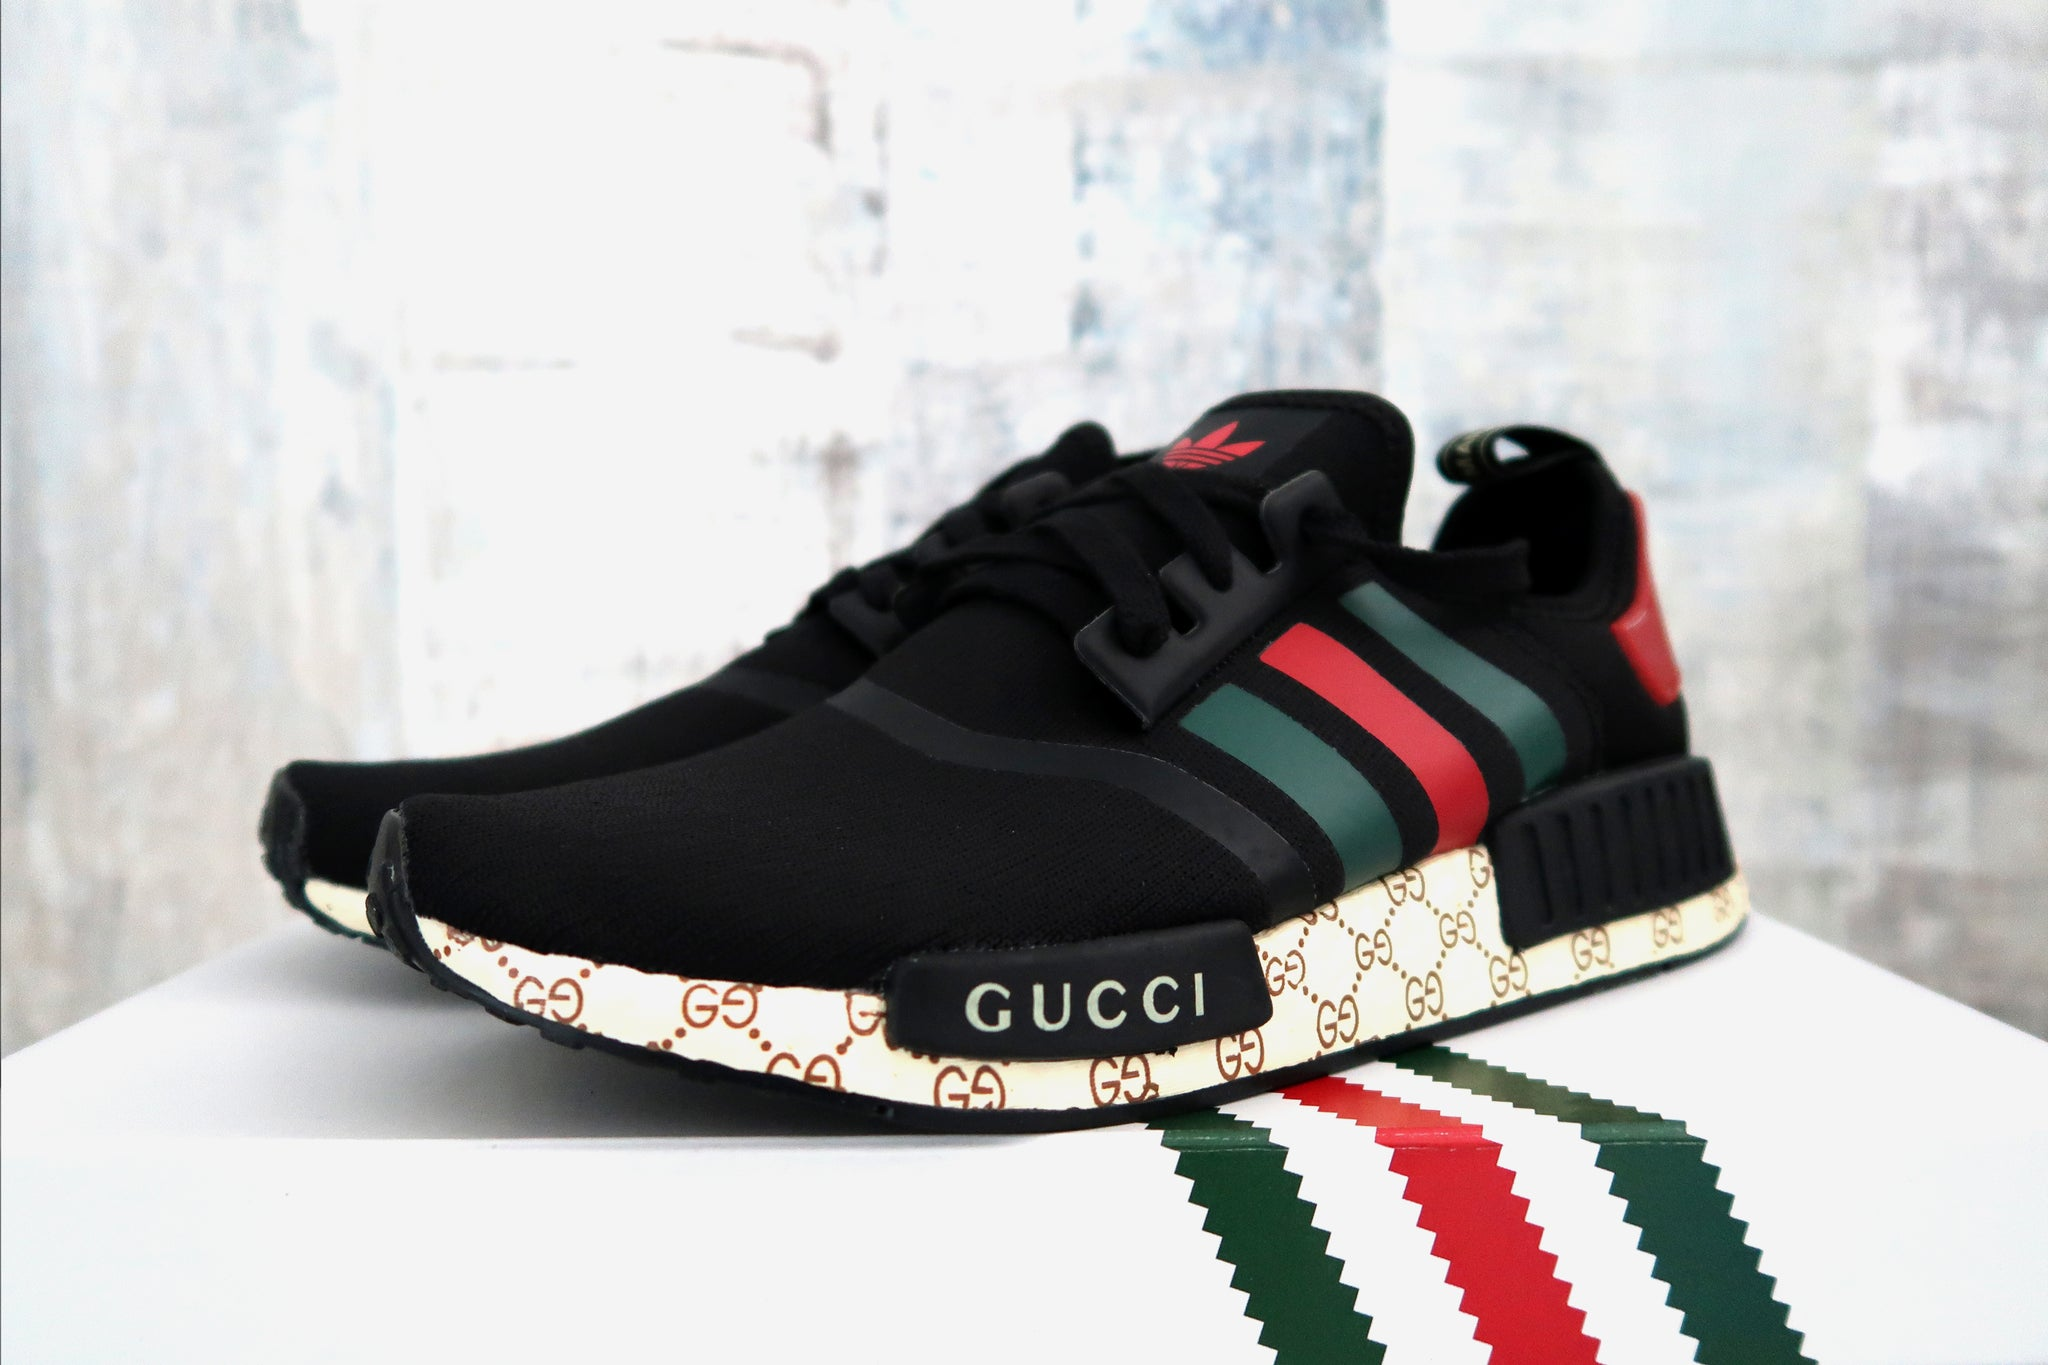 d0a1f009d Adidas NMD Black Custom Gucci Shoe – ASSC.one